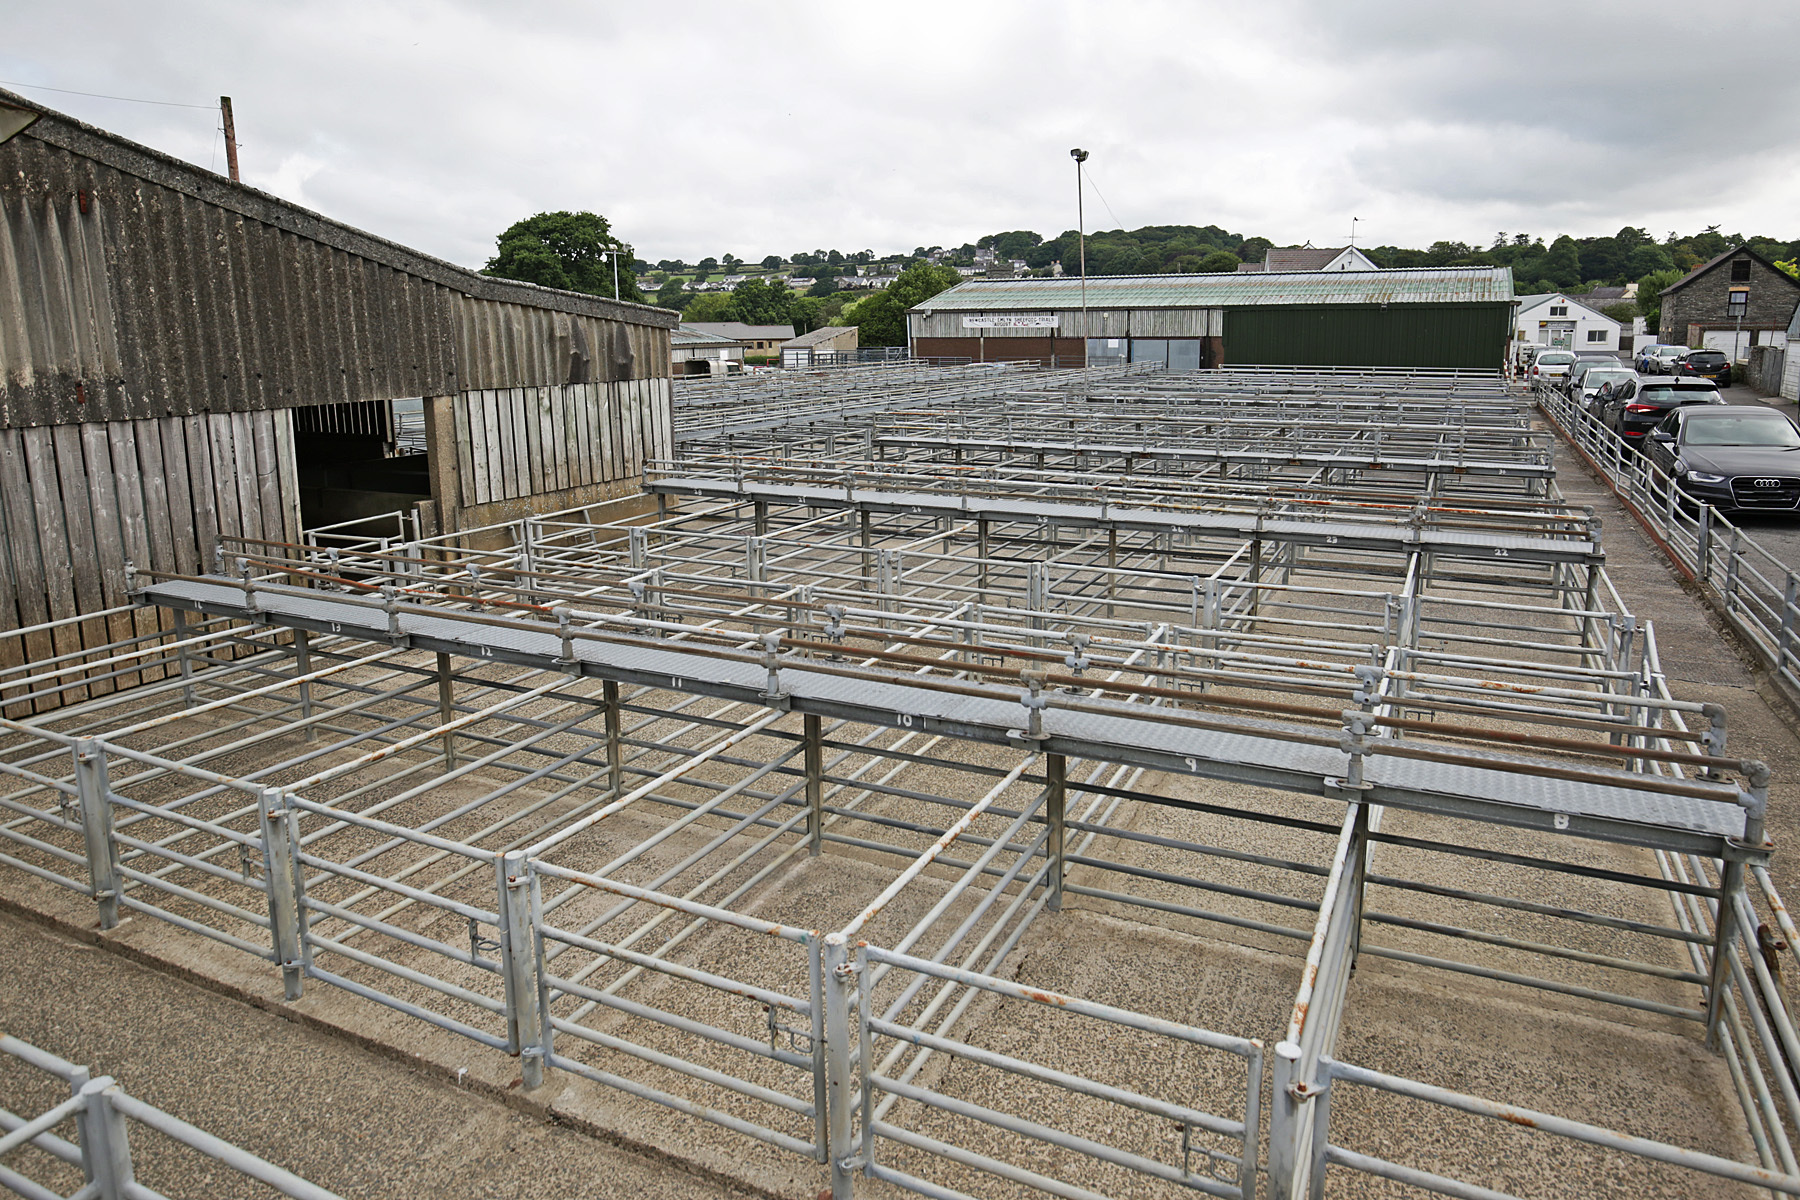 New firm takes over livestock marts PICTURE: Barry Adams